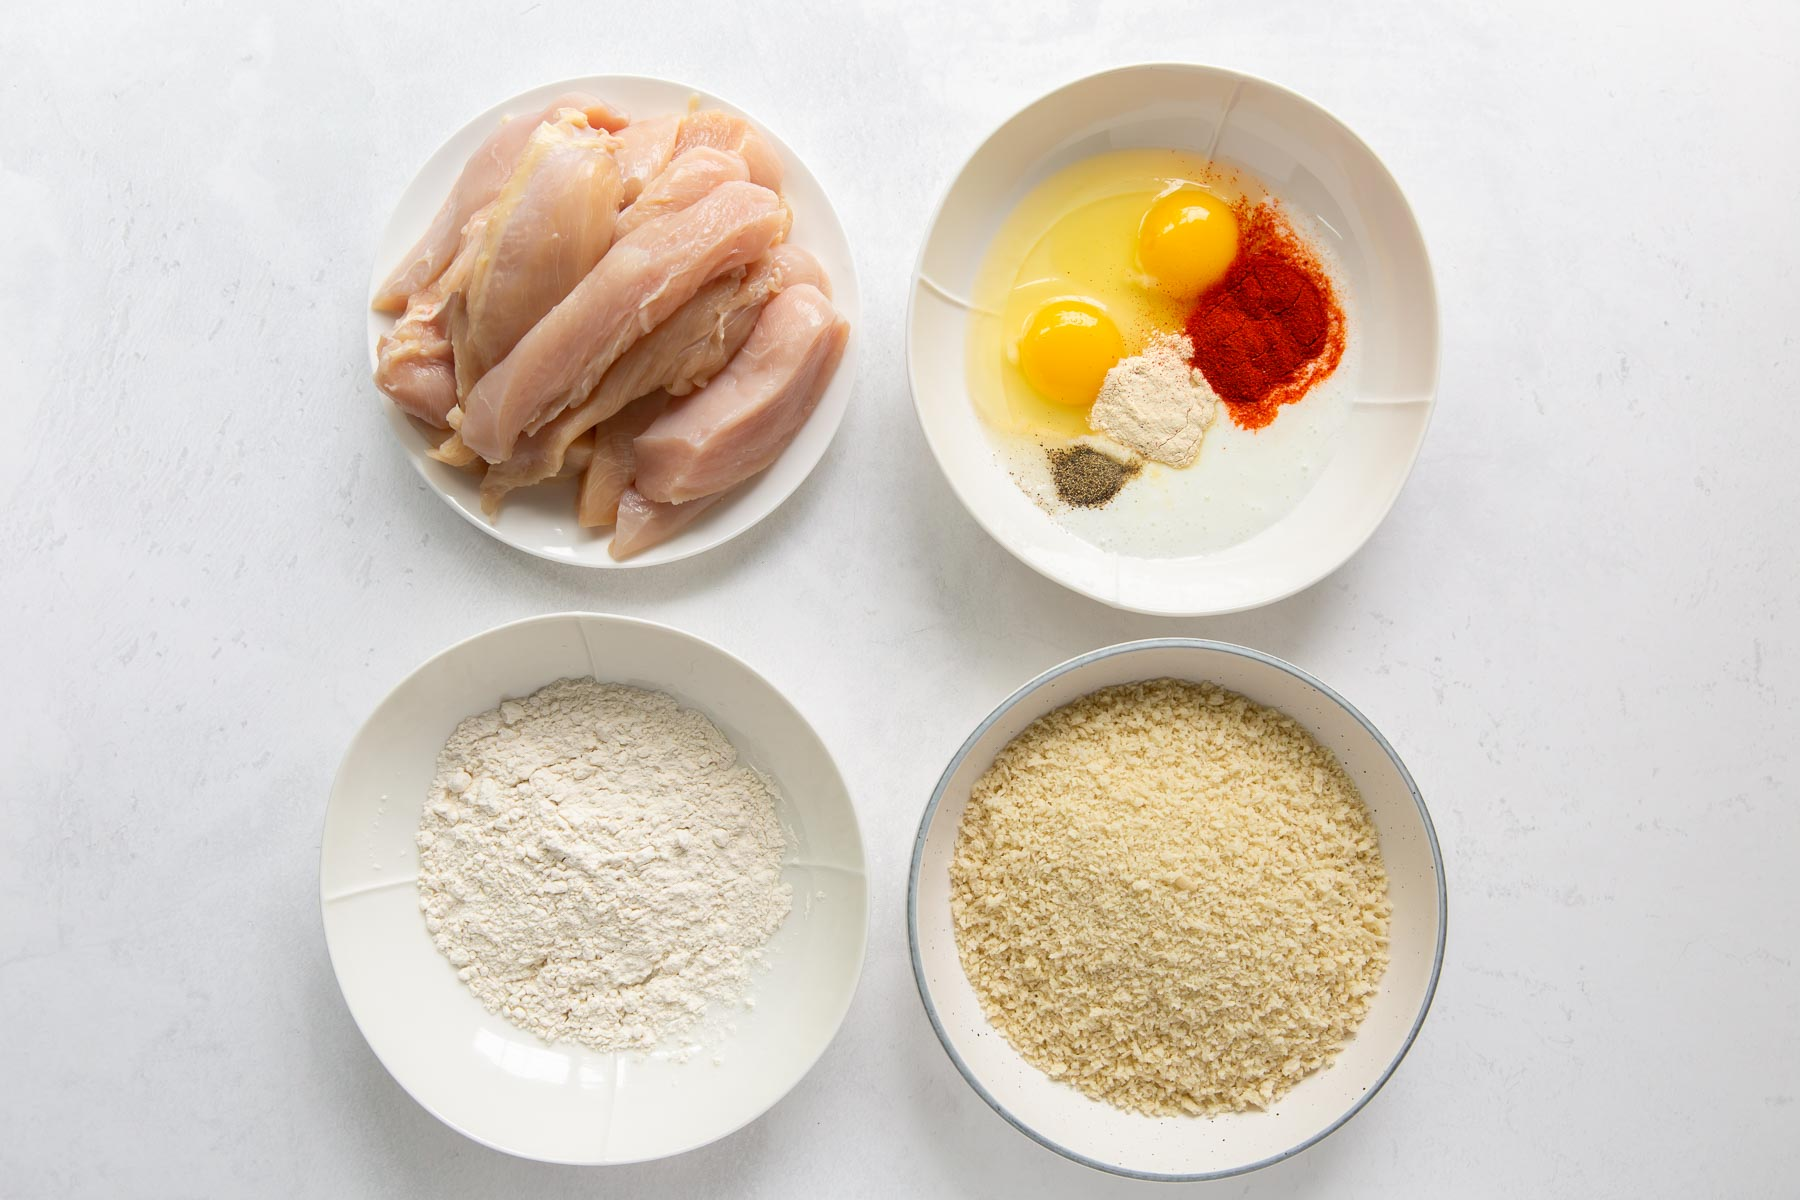 ingredients for chicken tenders, chicken, egg, buttermilk, seasonings, flour and panko breadcrumbs in white dishes